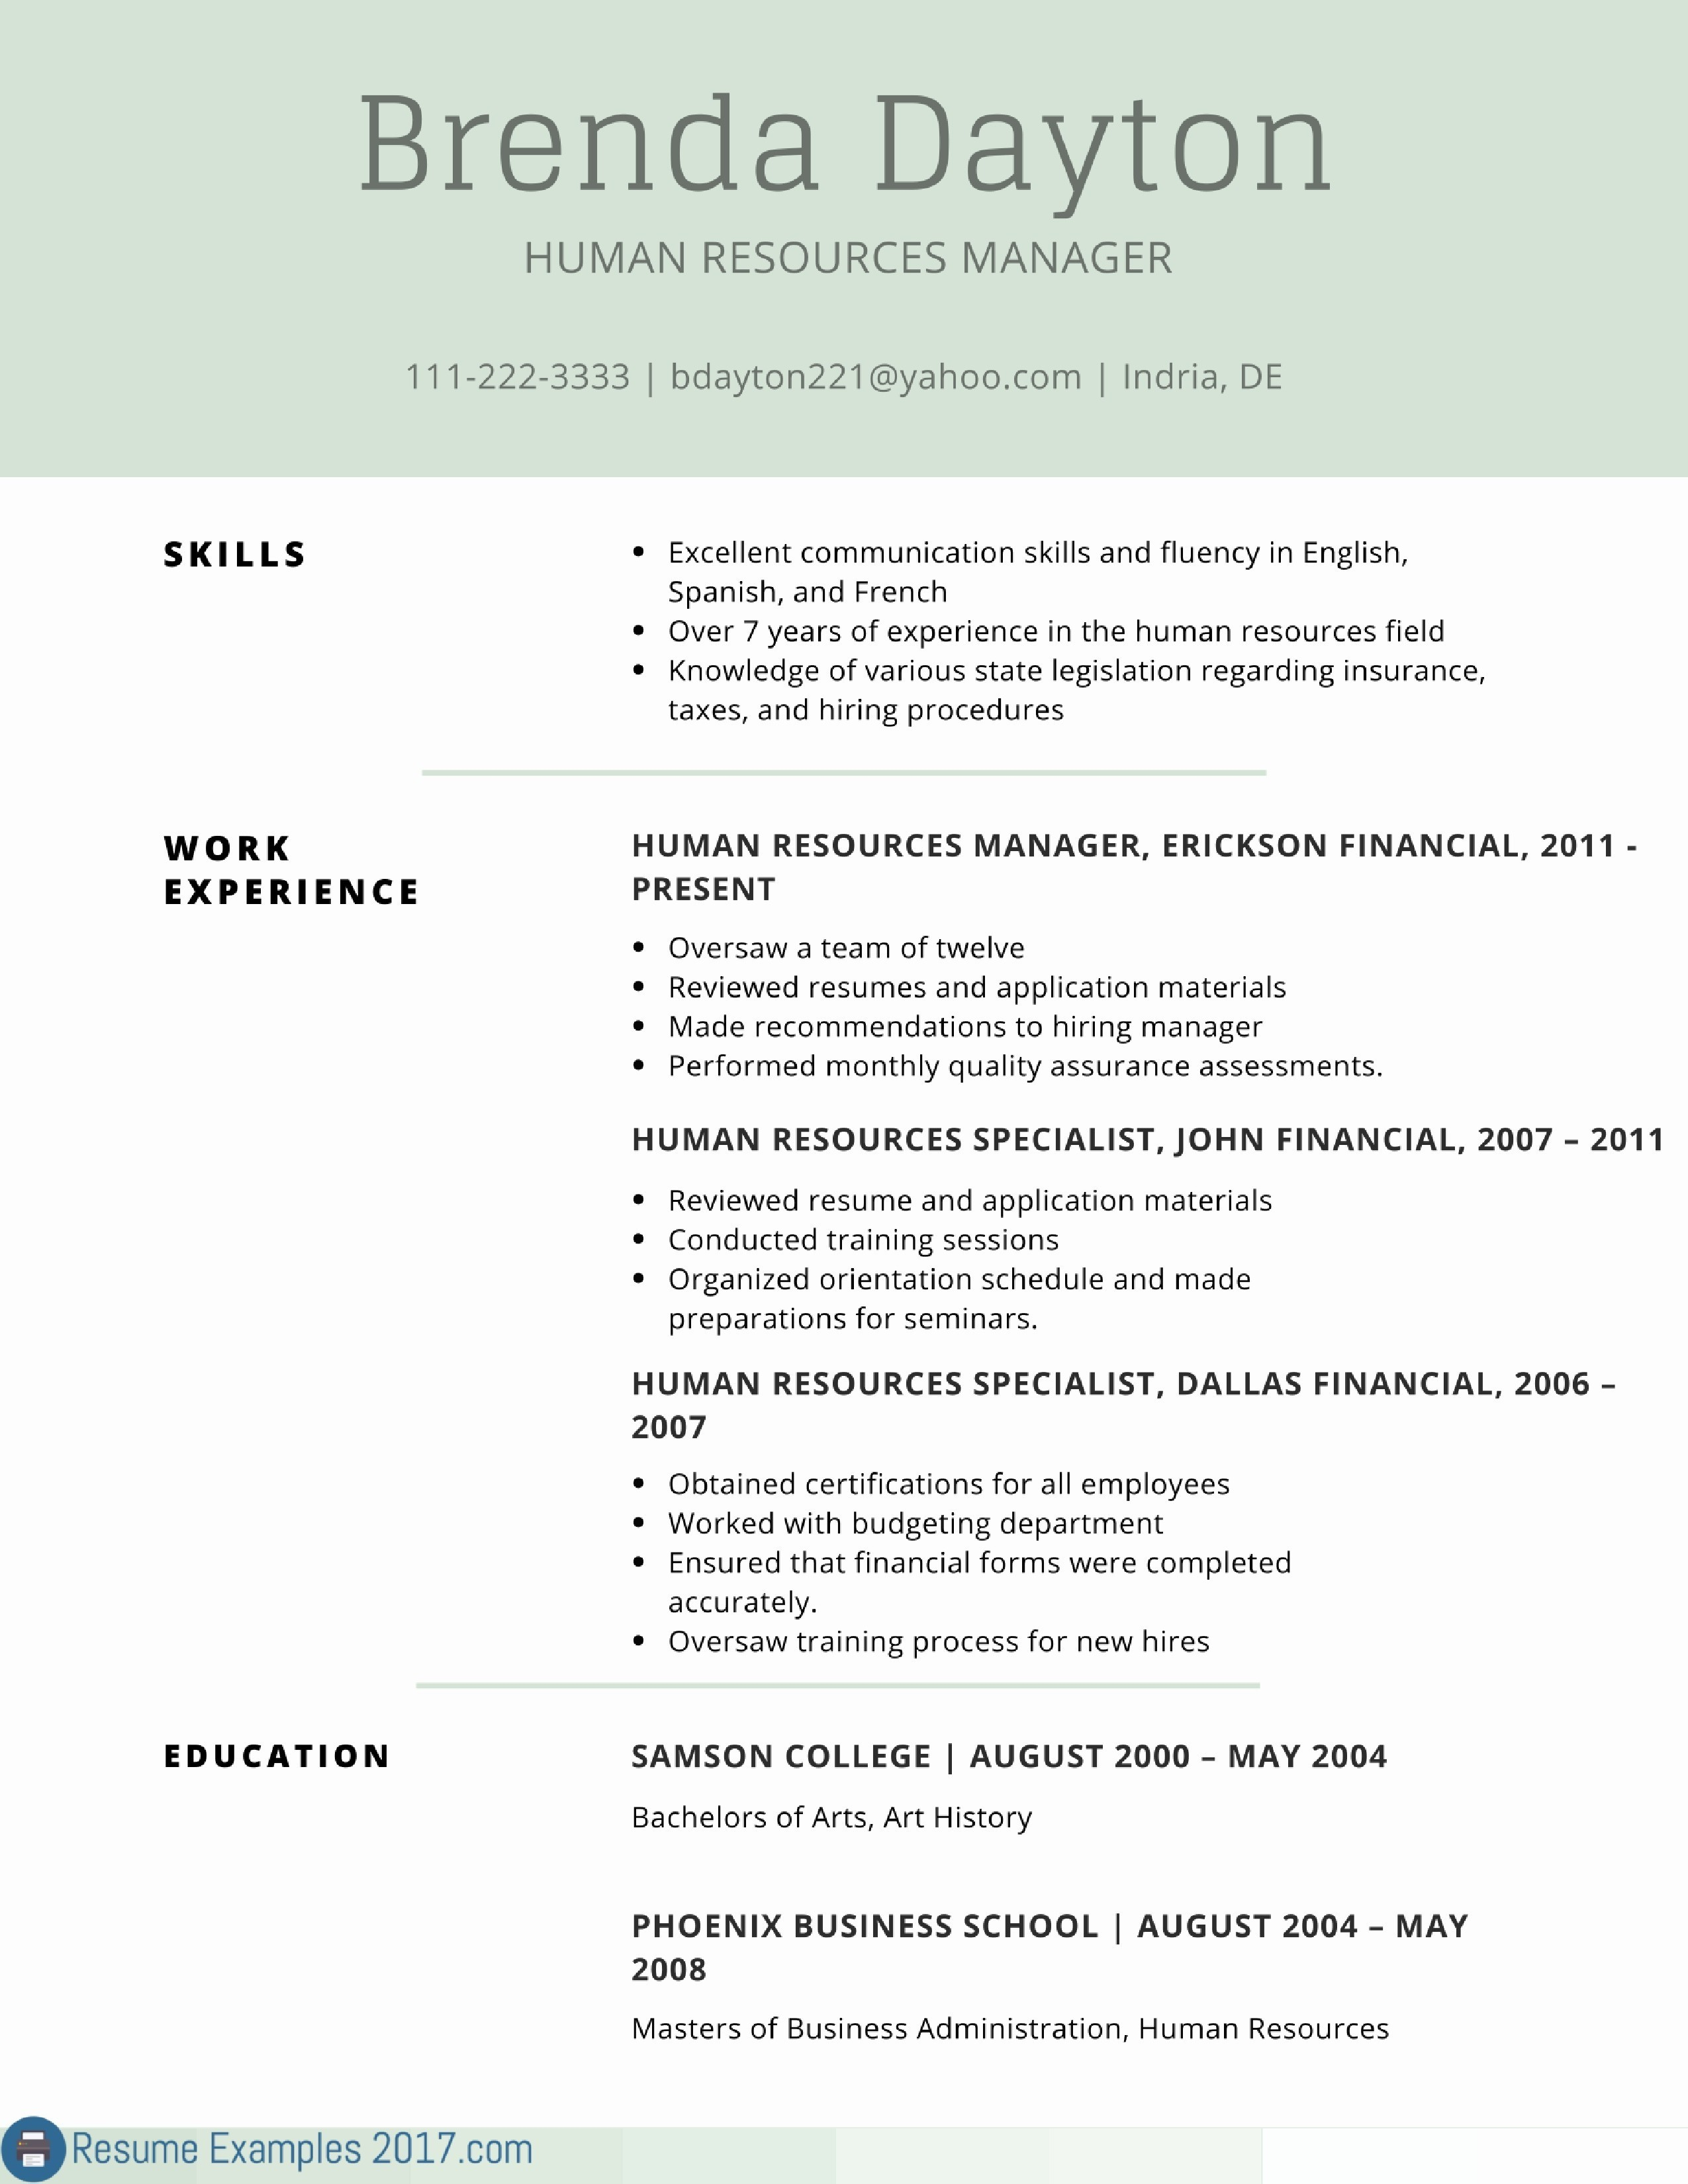 Where to Get A Resume Done Professionally - Professional Resume Templates Best Resume Template Open Fice